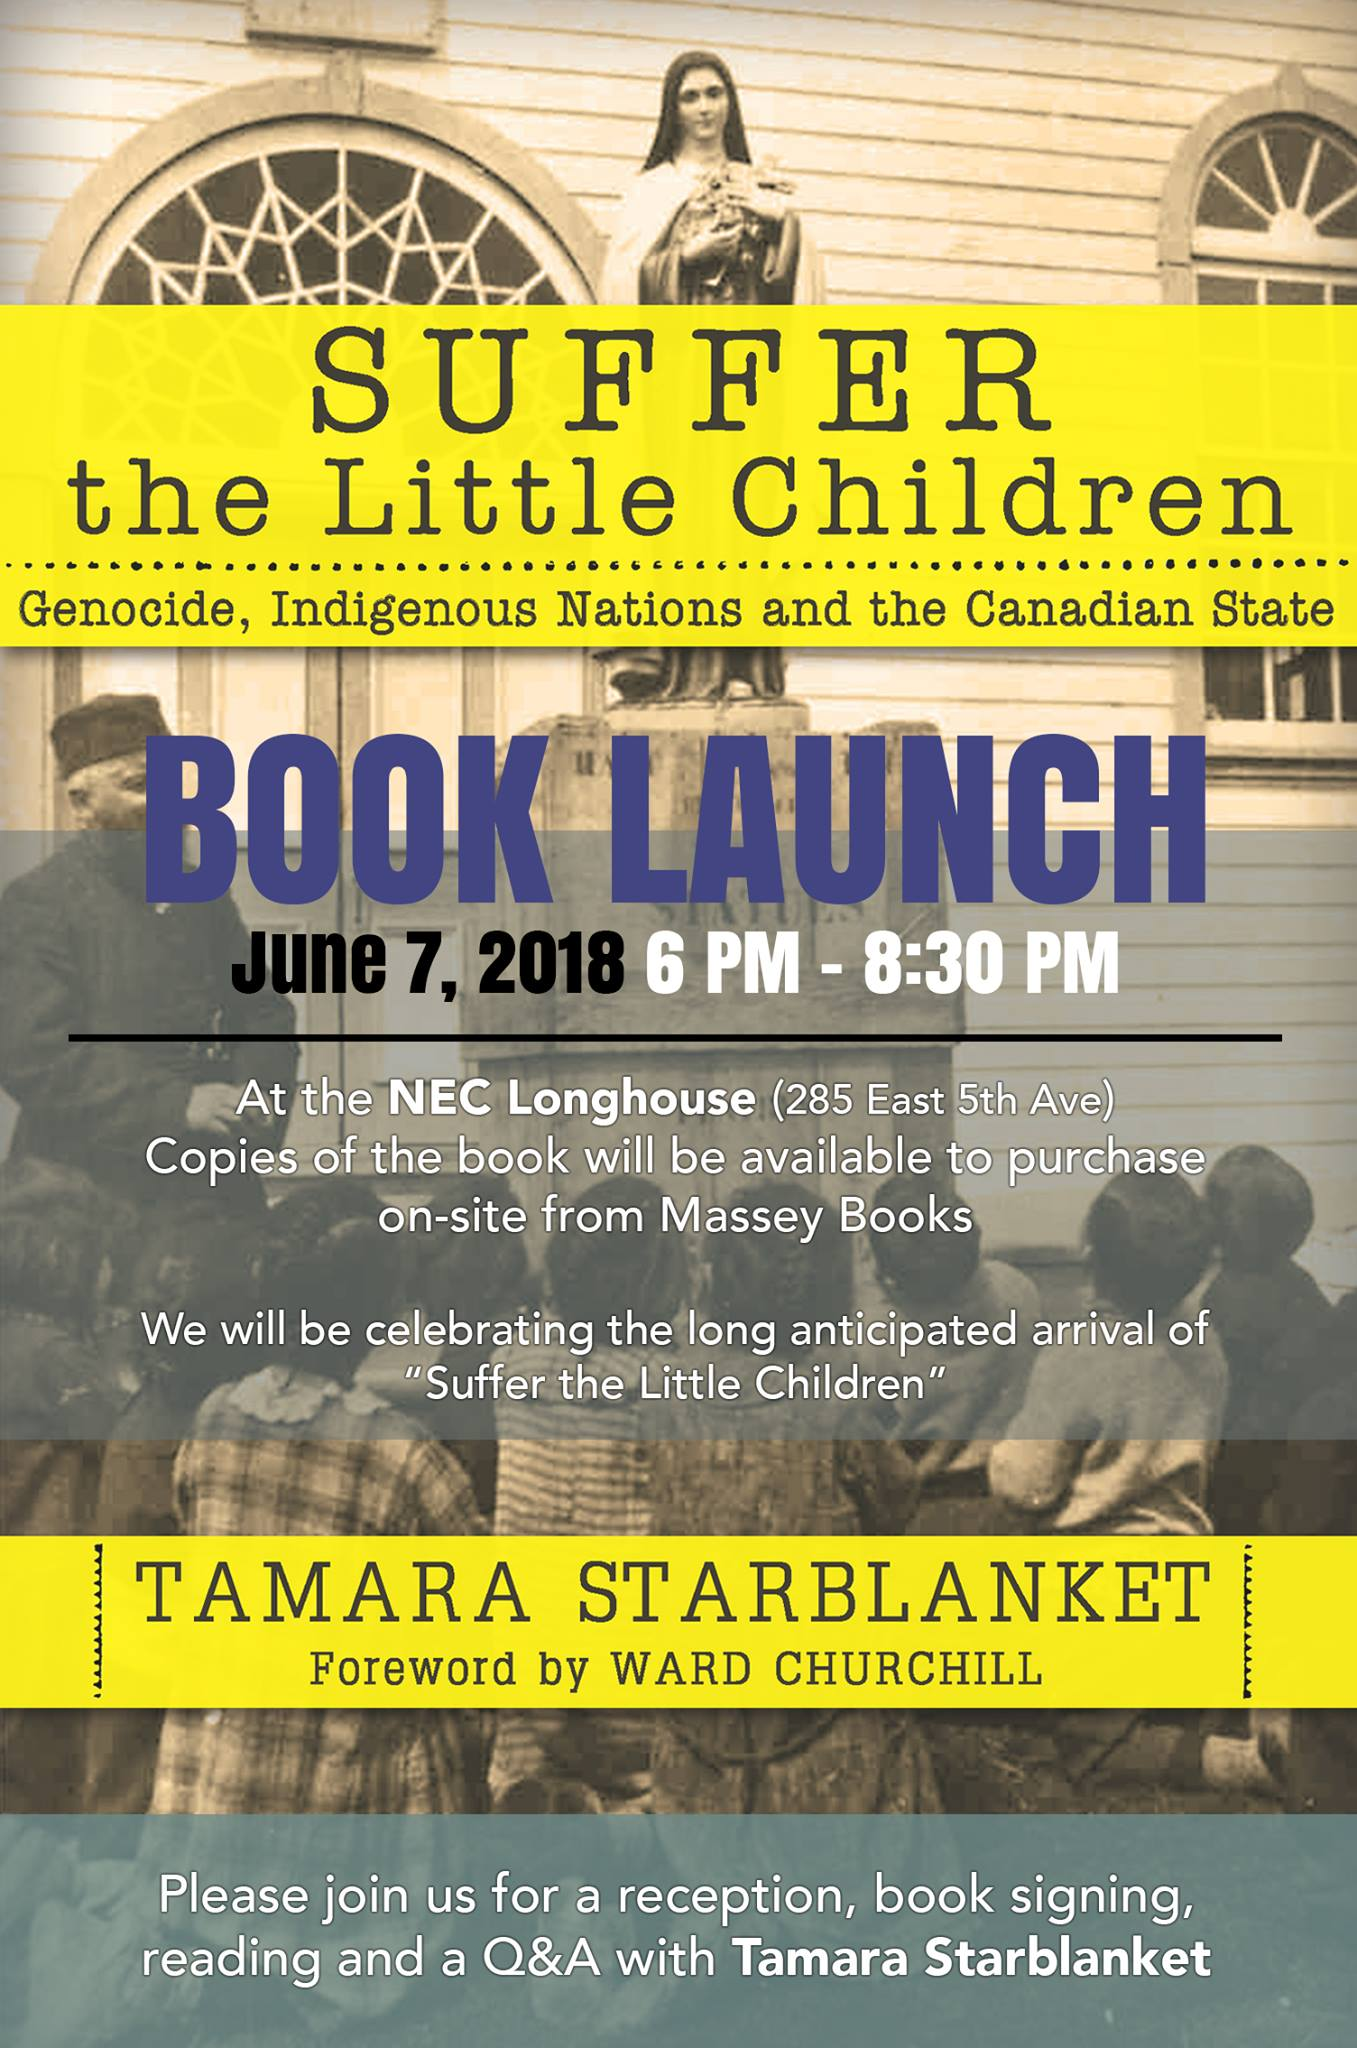 STLC Book Launch